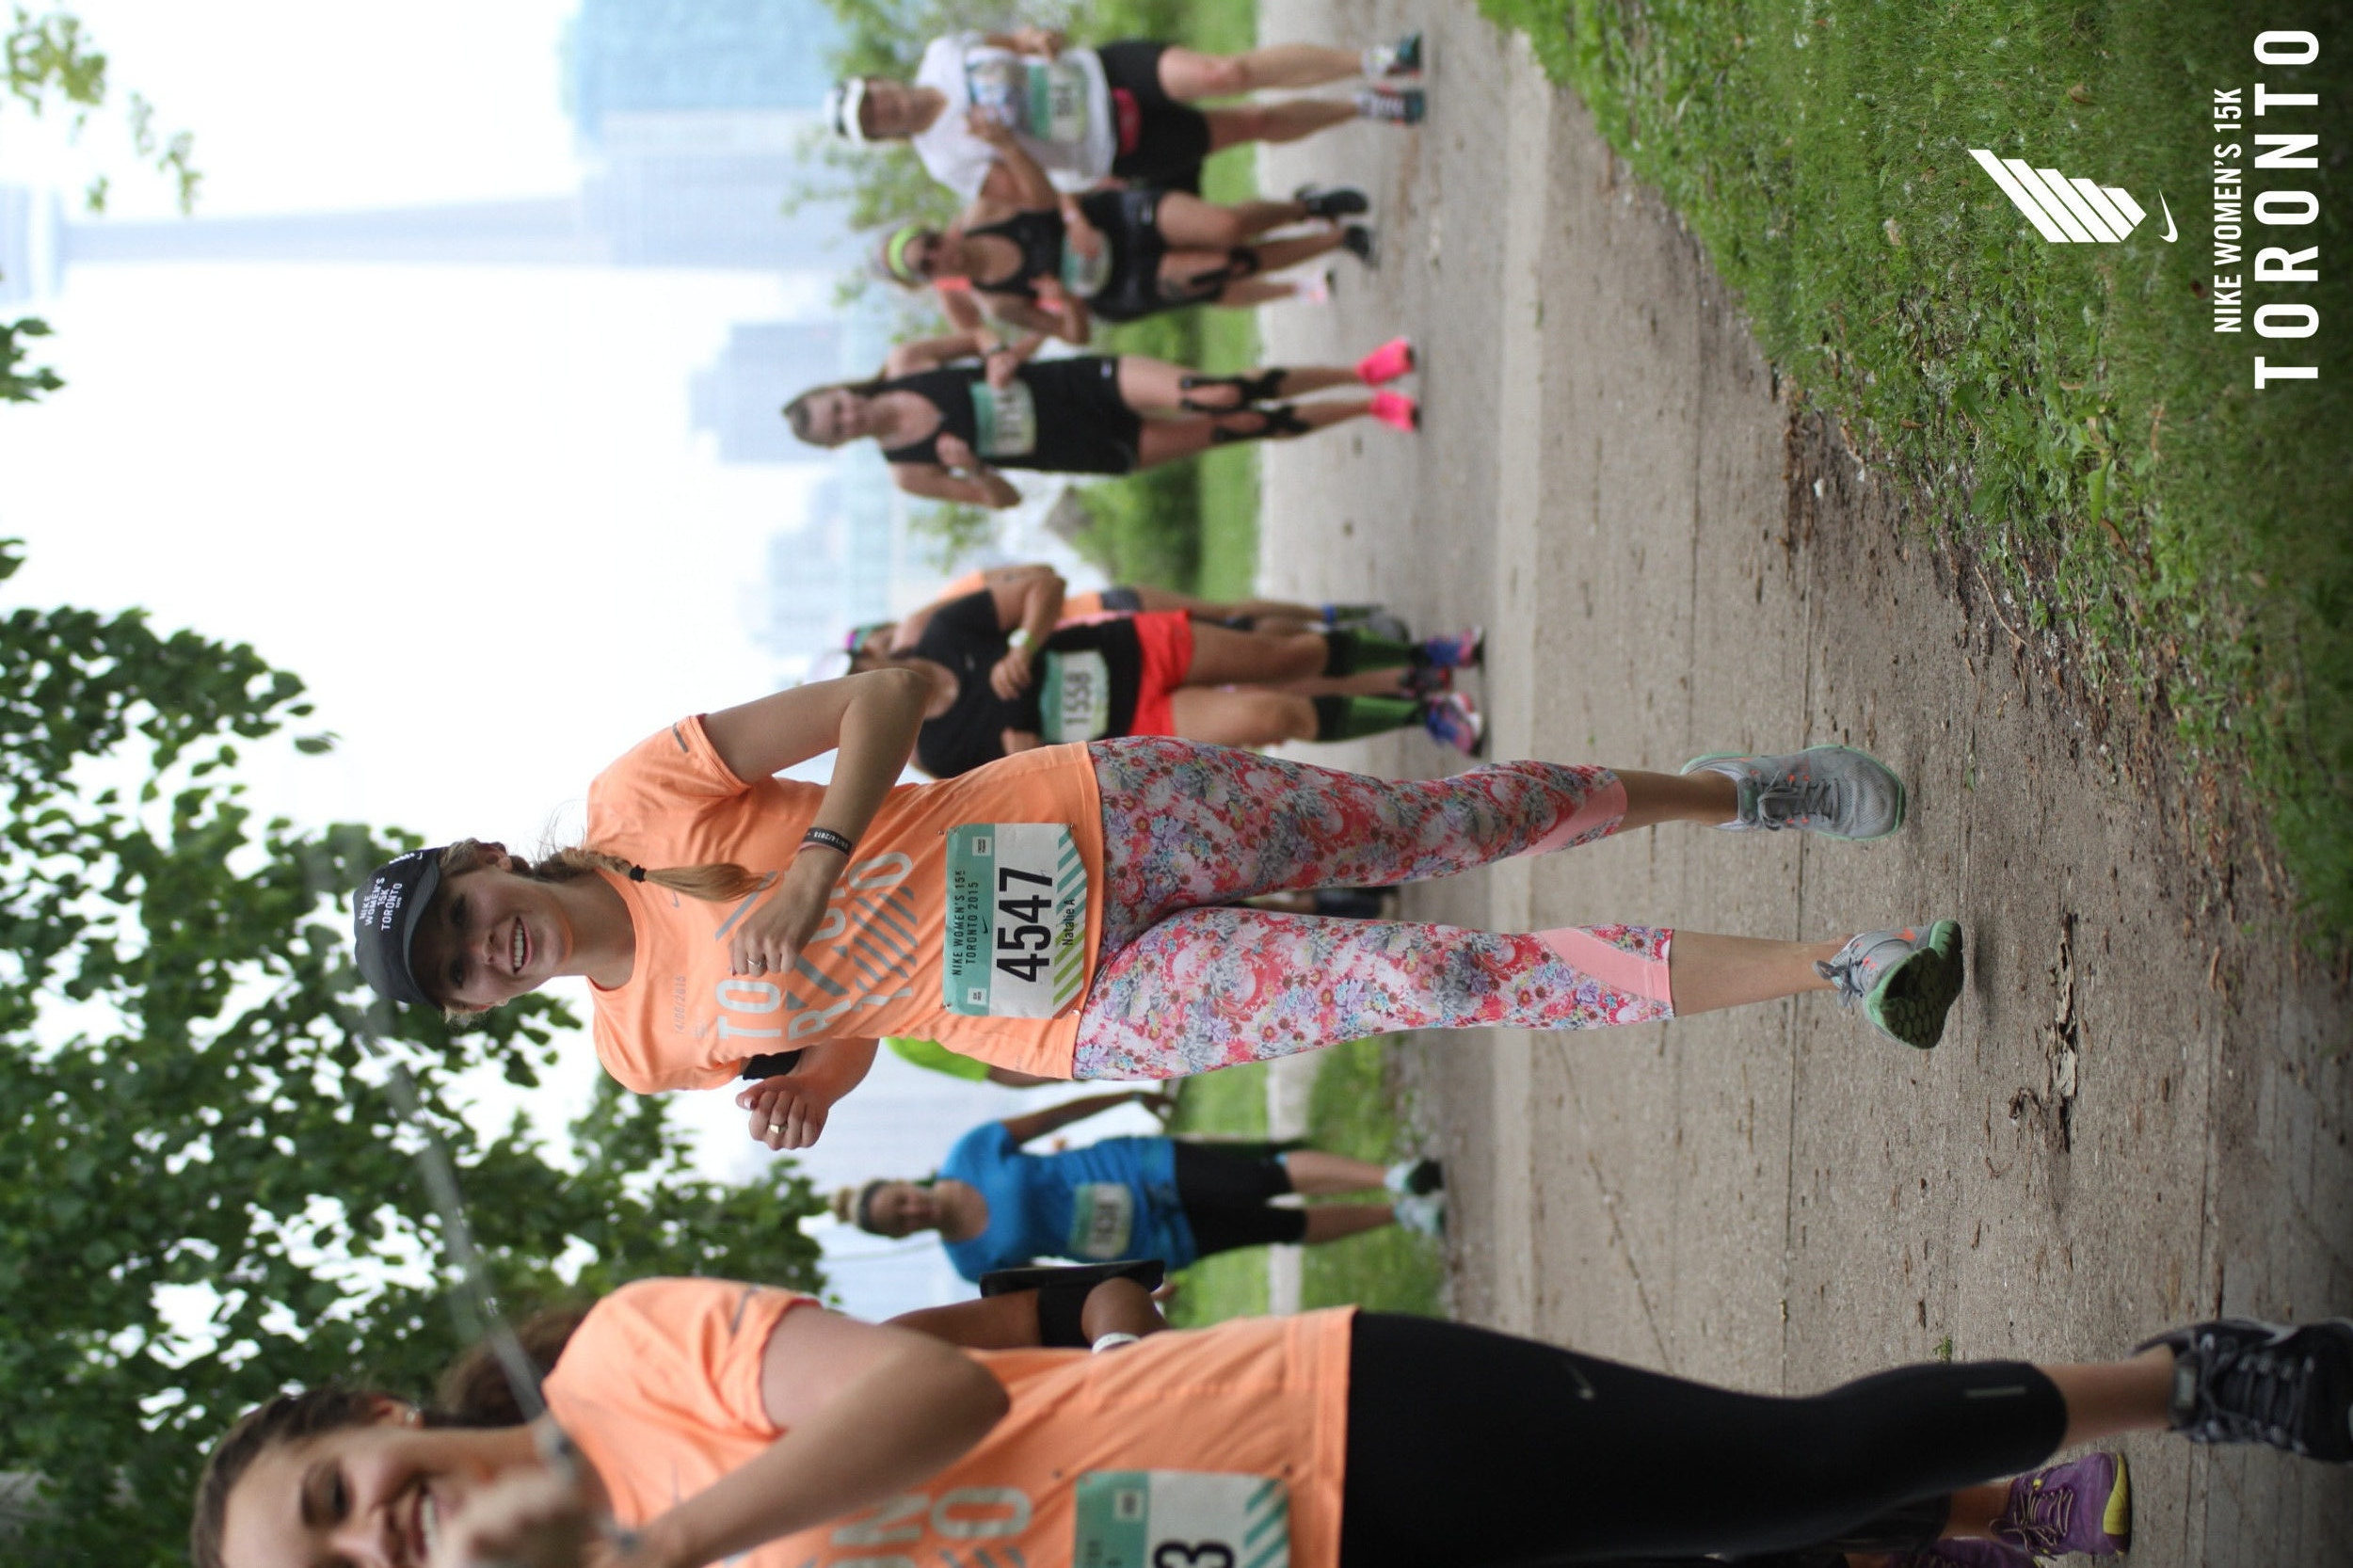 nike women's 15k toronto race photo